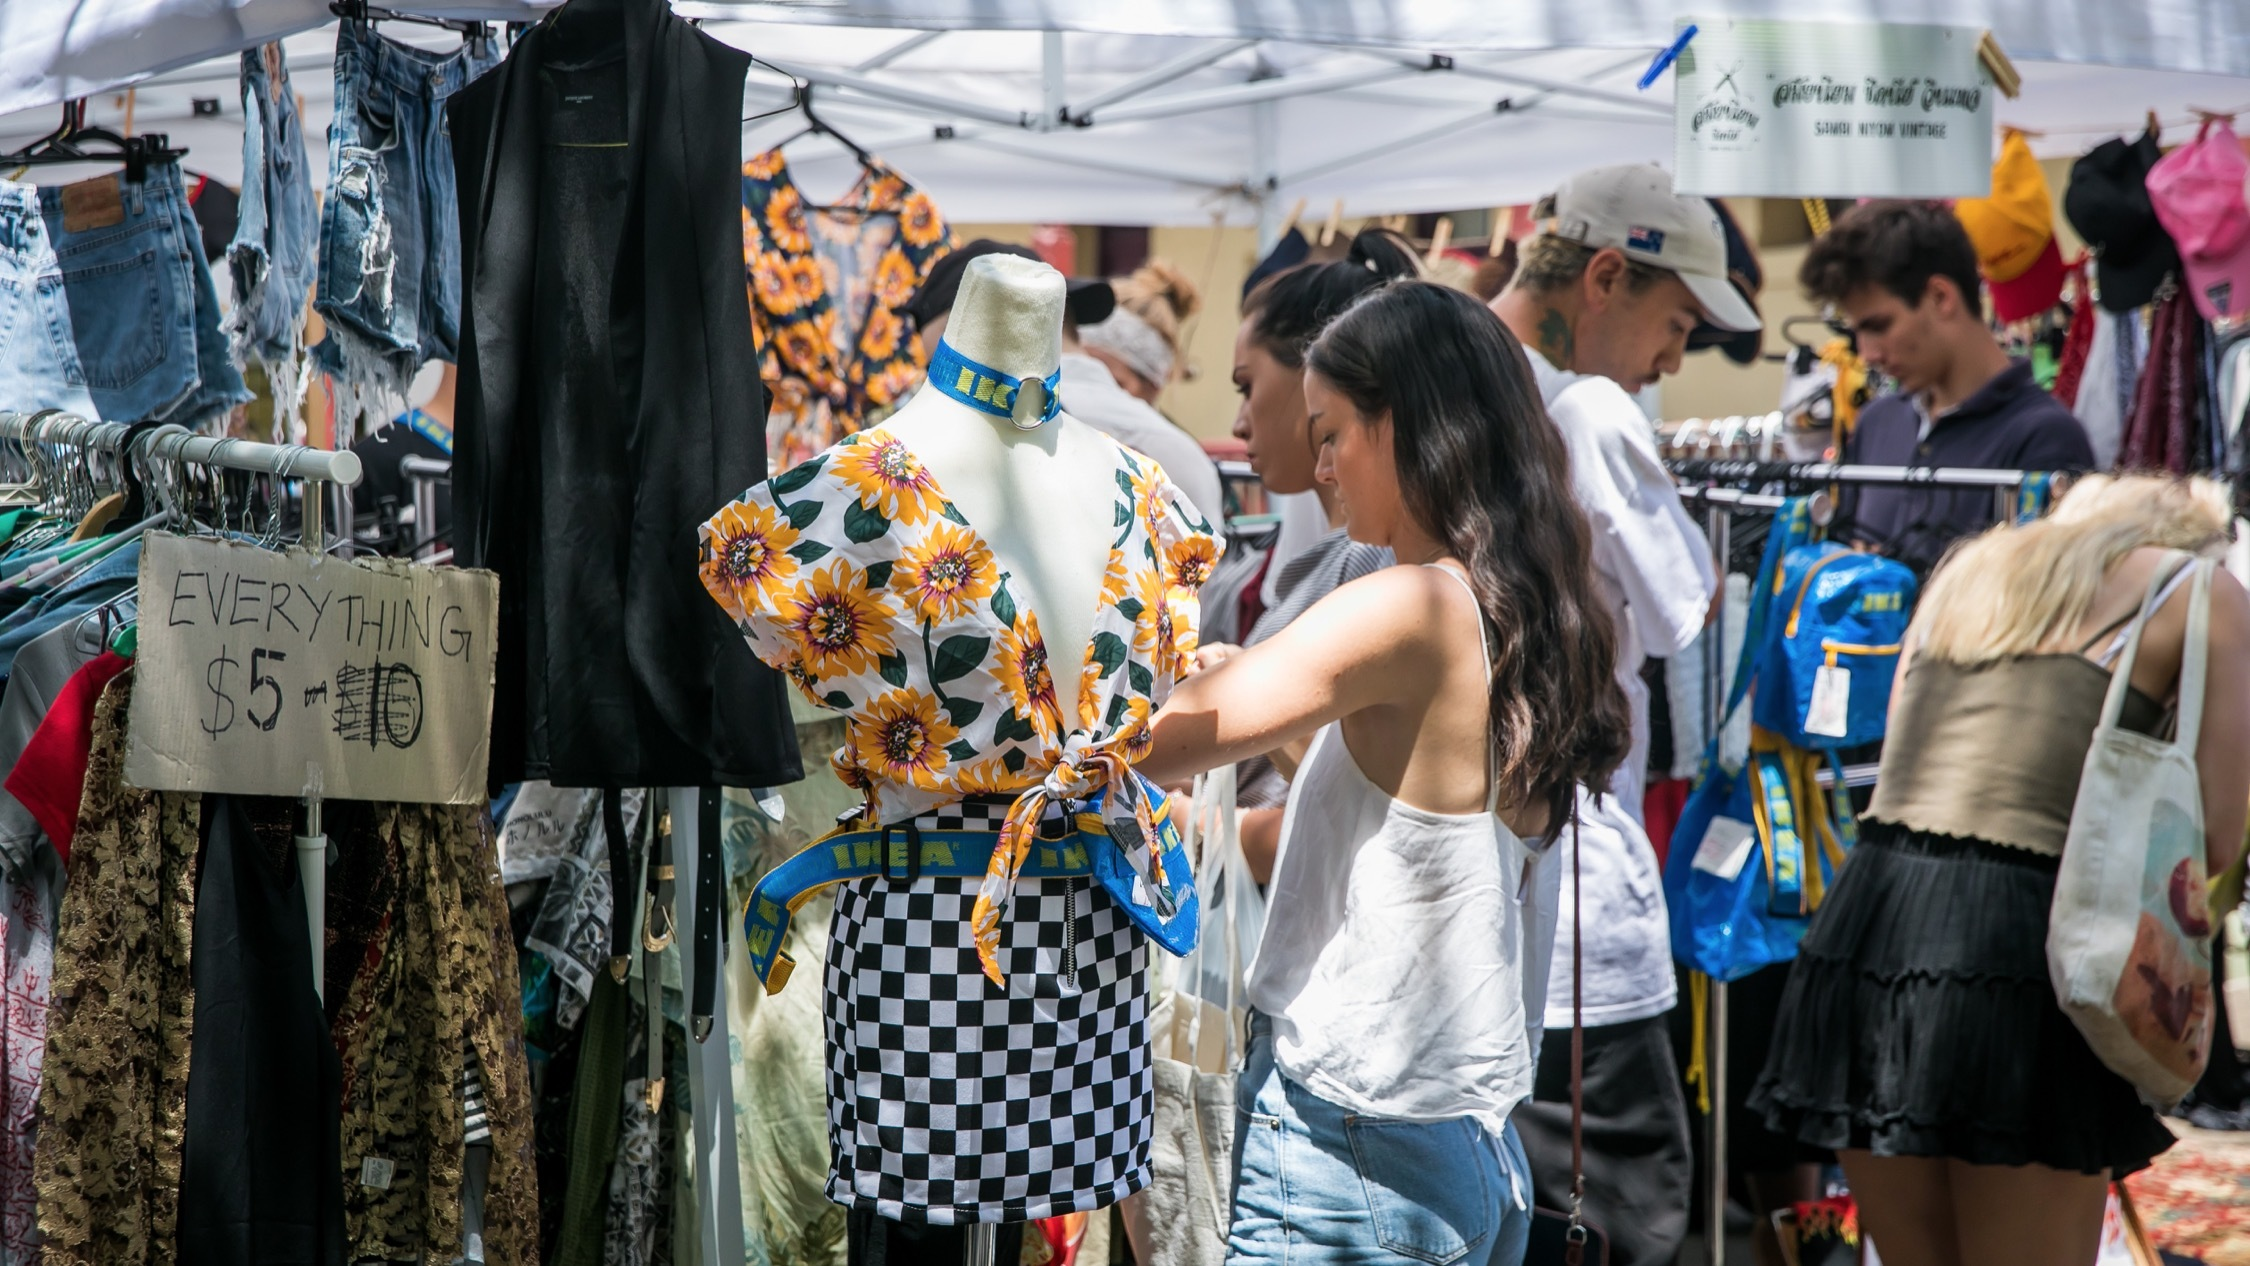 Vintage clothes stall at Glebe Markets